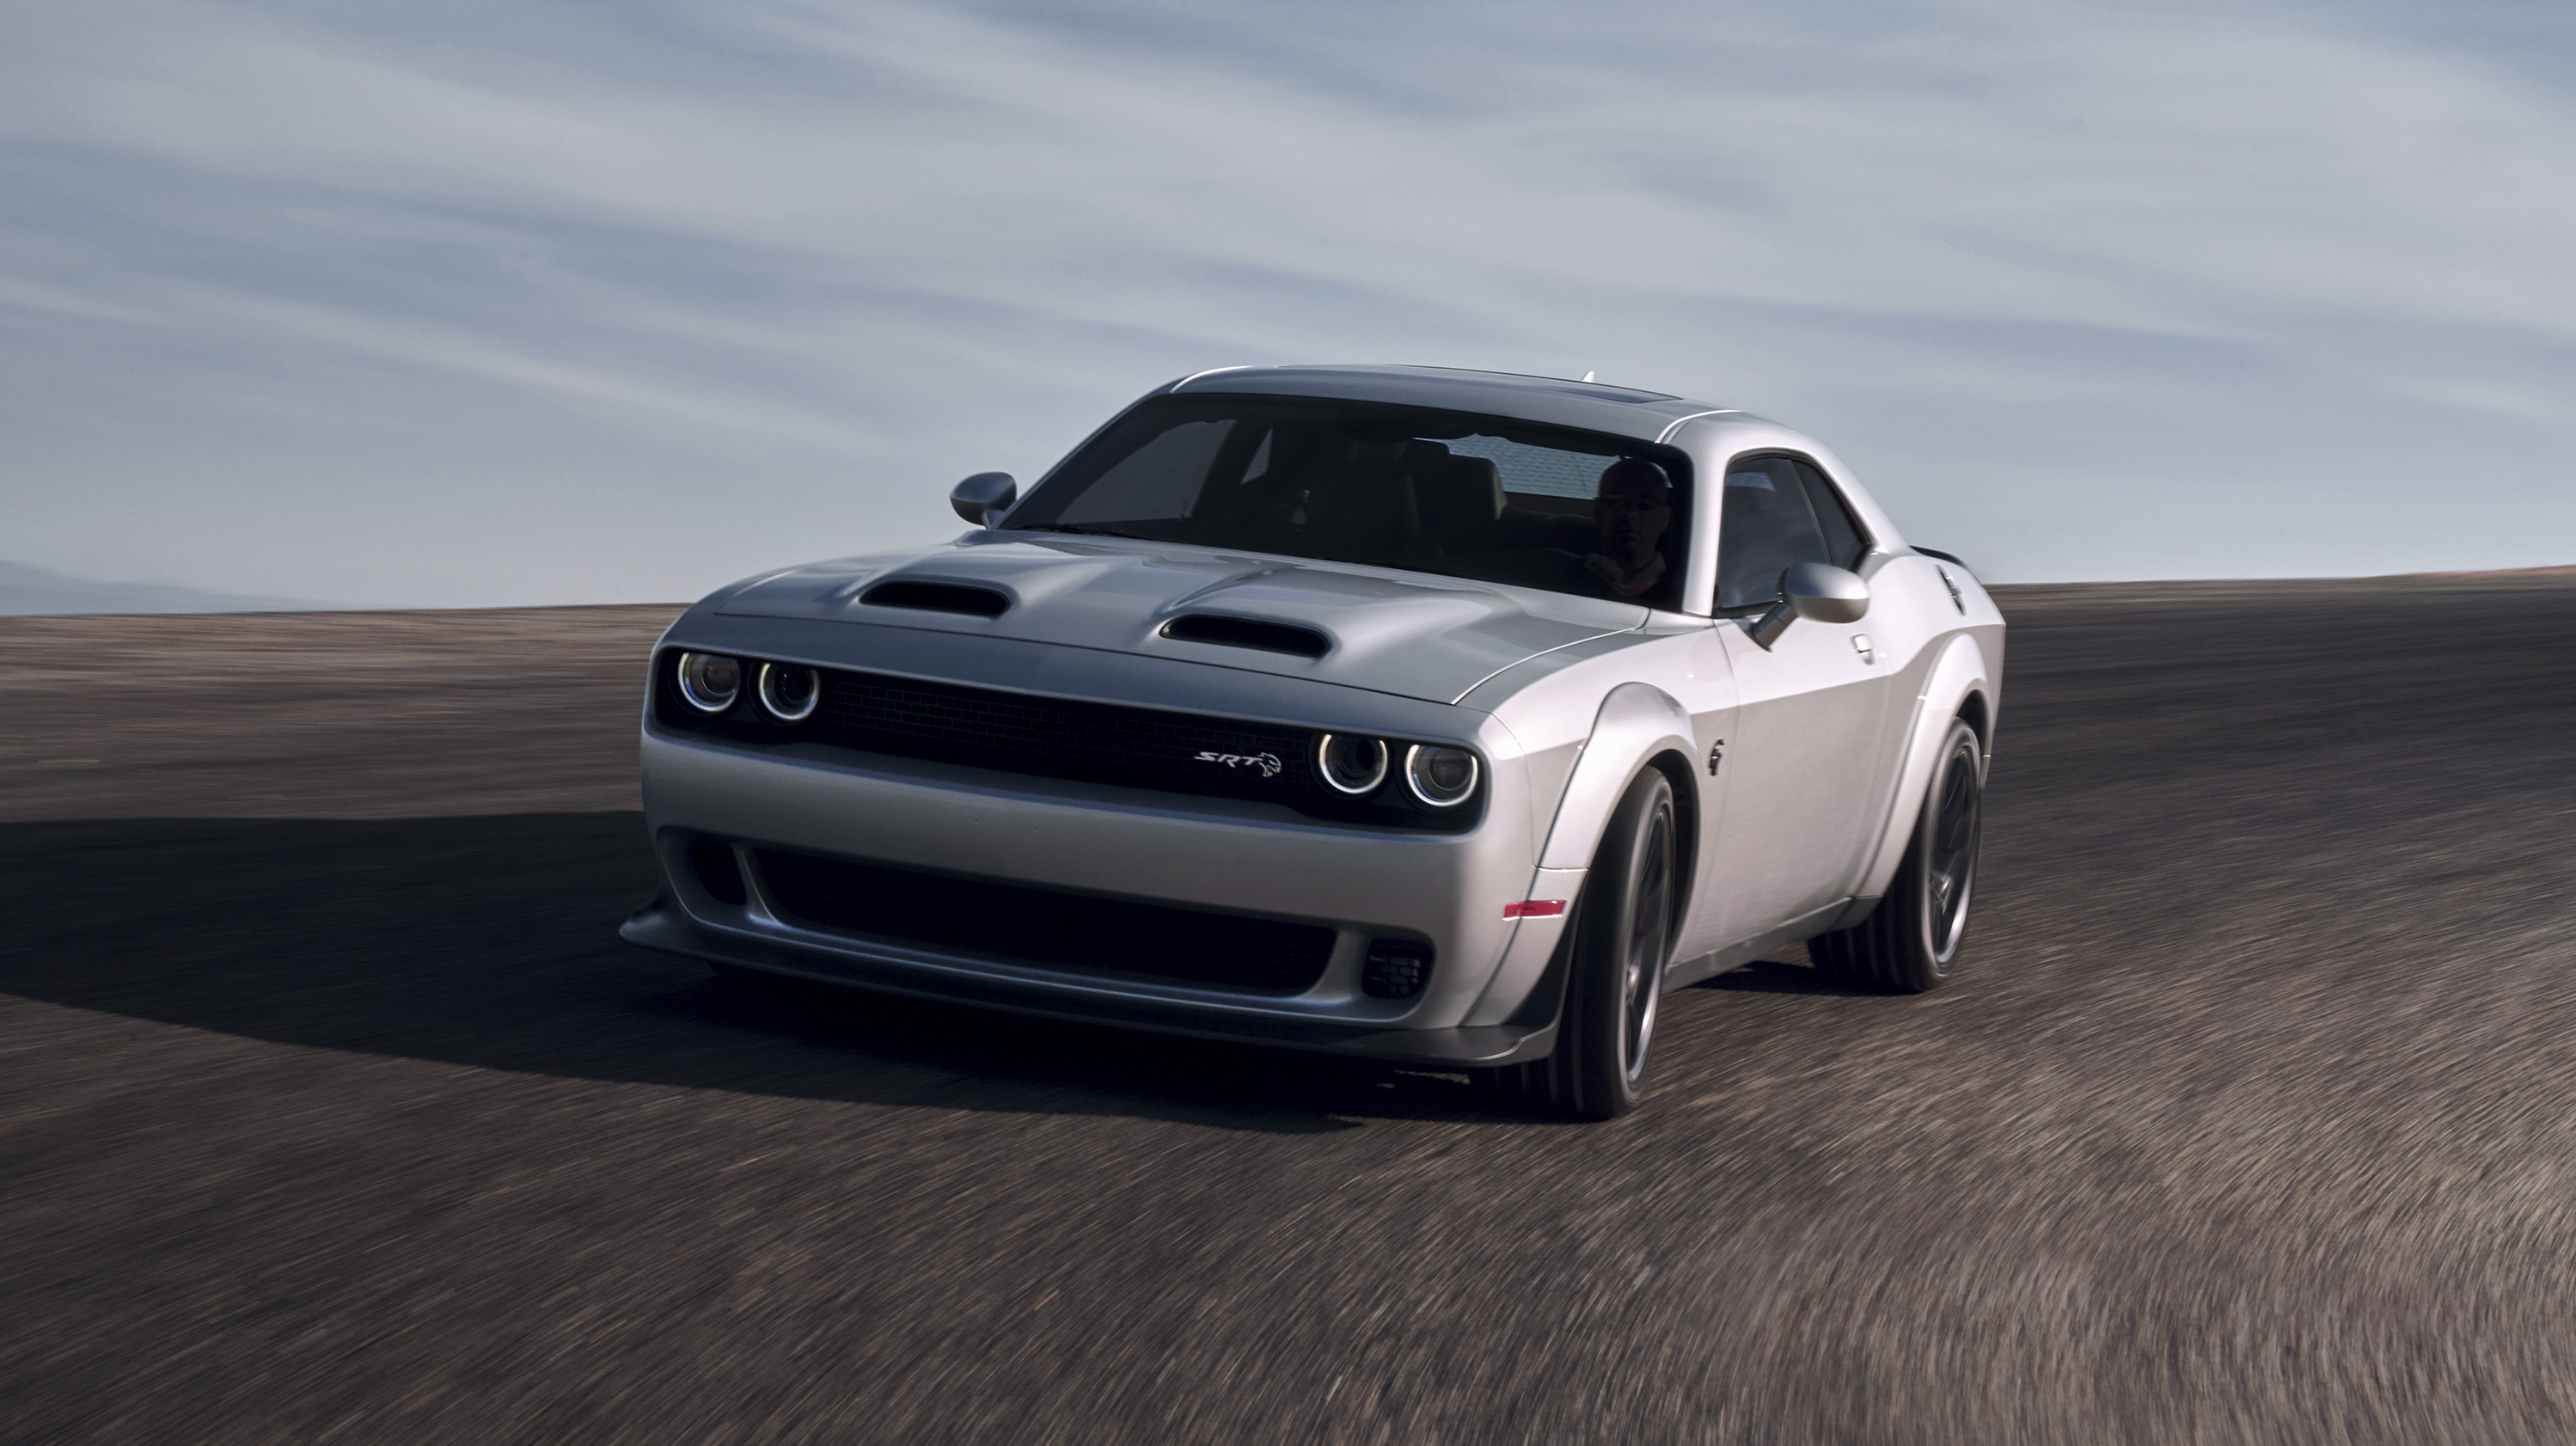 2019 Dodge Challenger Srt Hellcat Redeye Pictures Photos